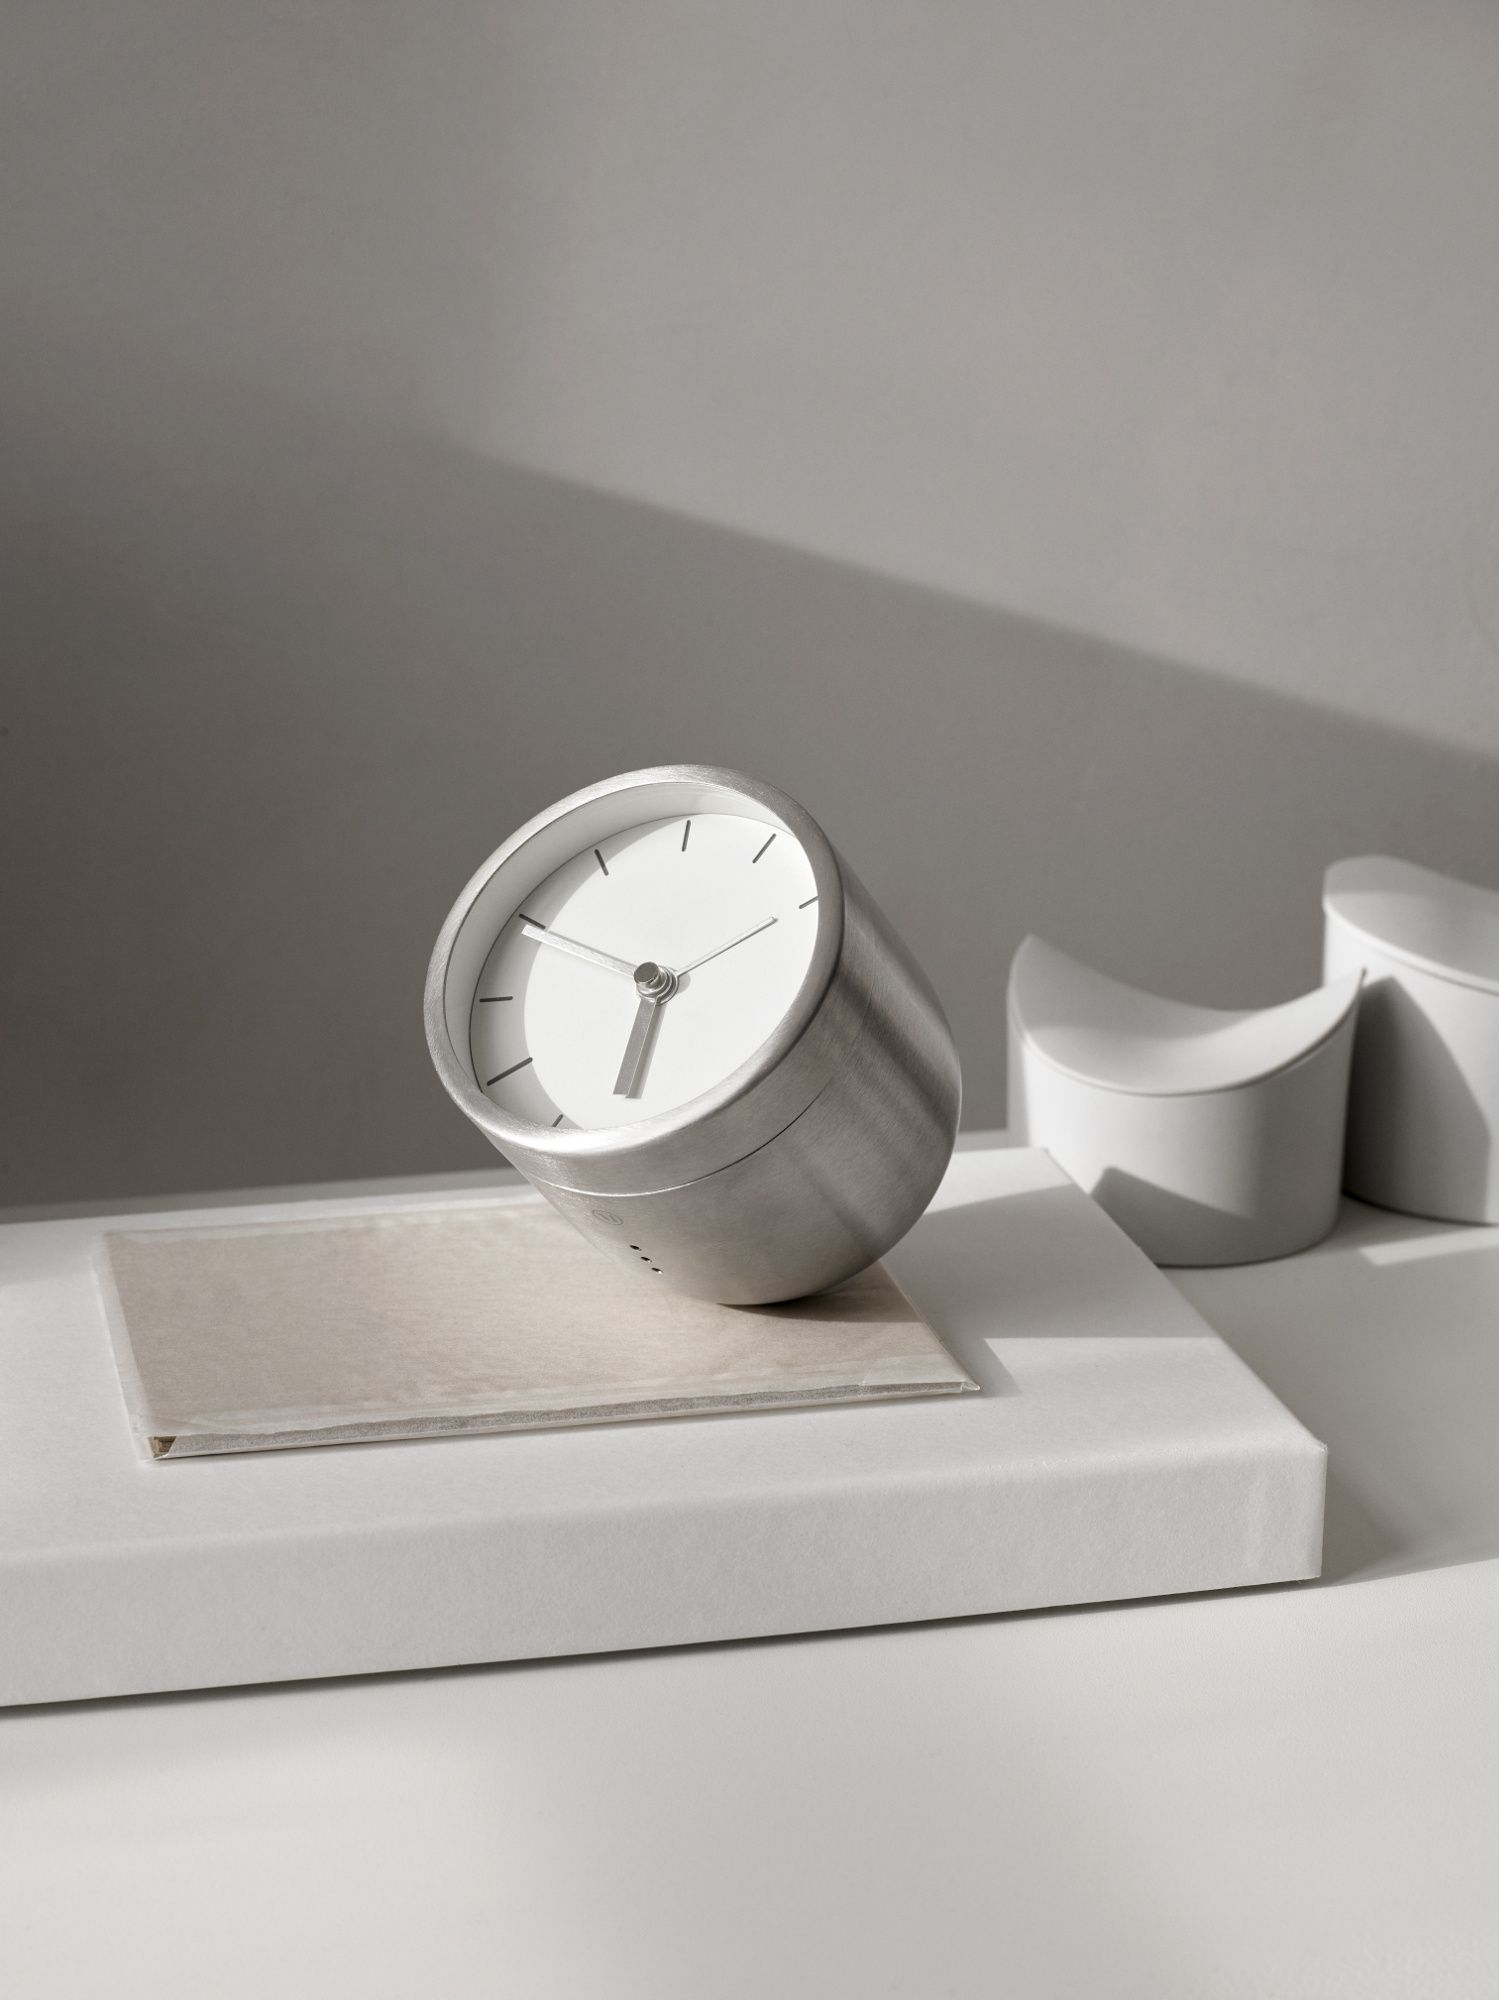 Tumbler Alarm Clock by Norm Architects | For The Home in 2019 ...